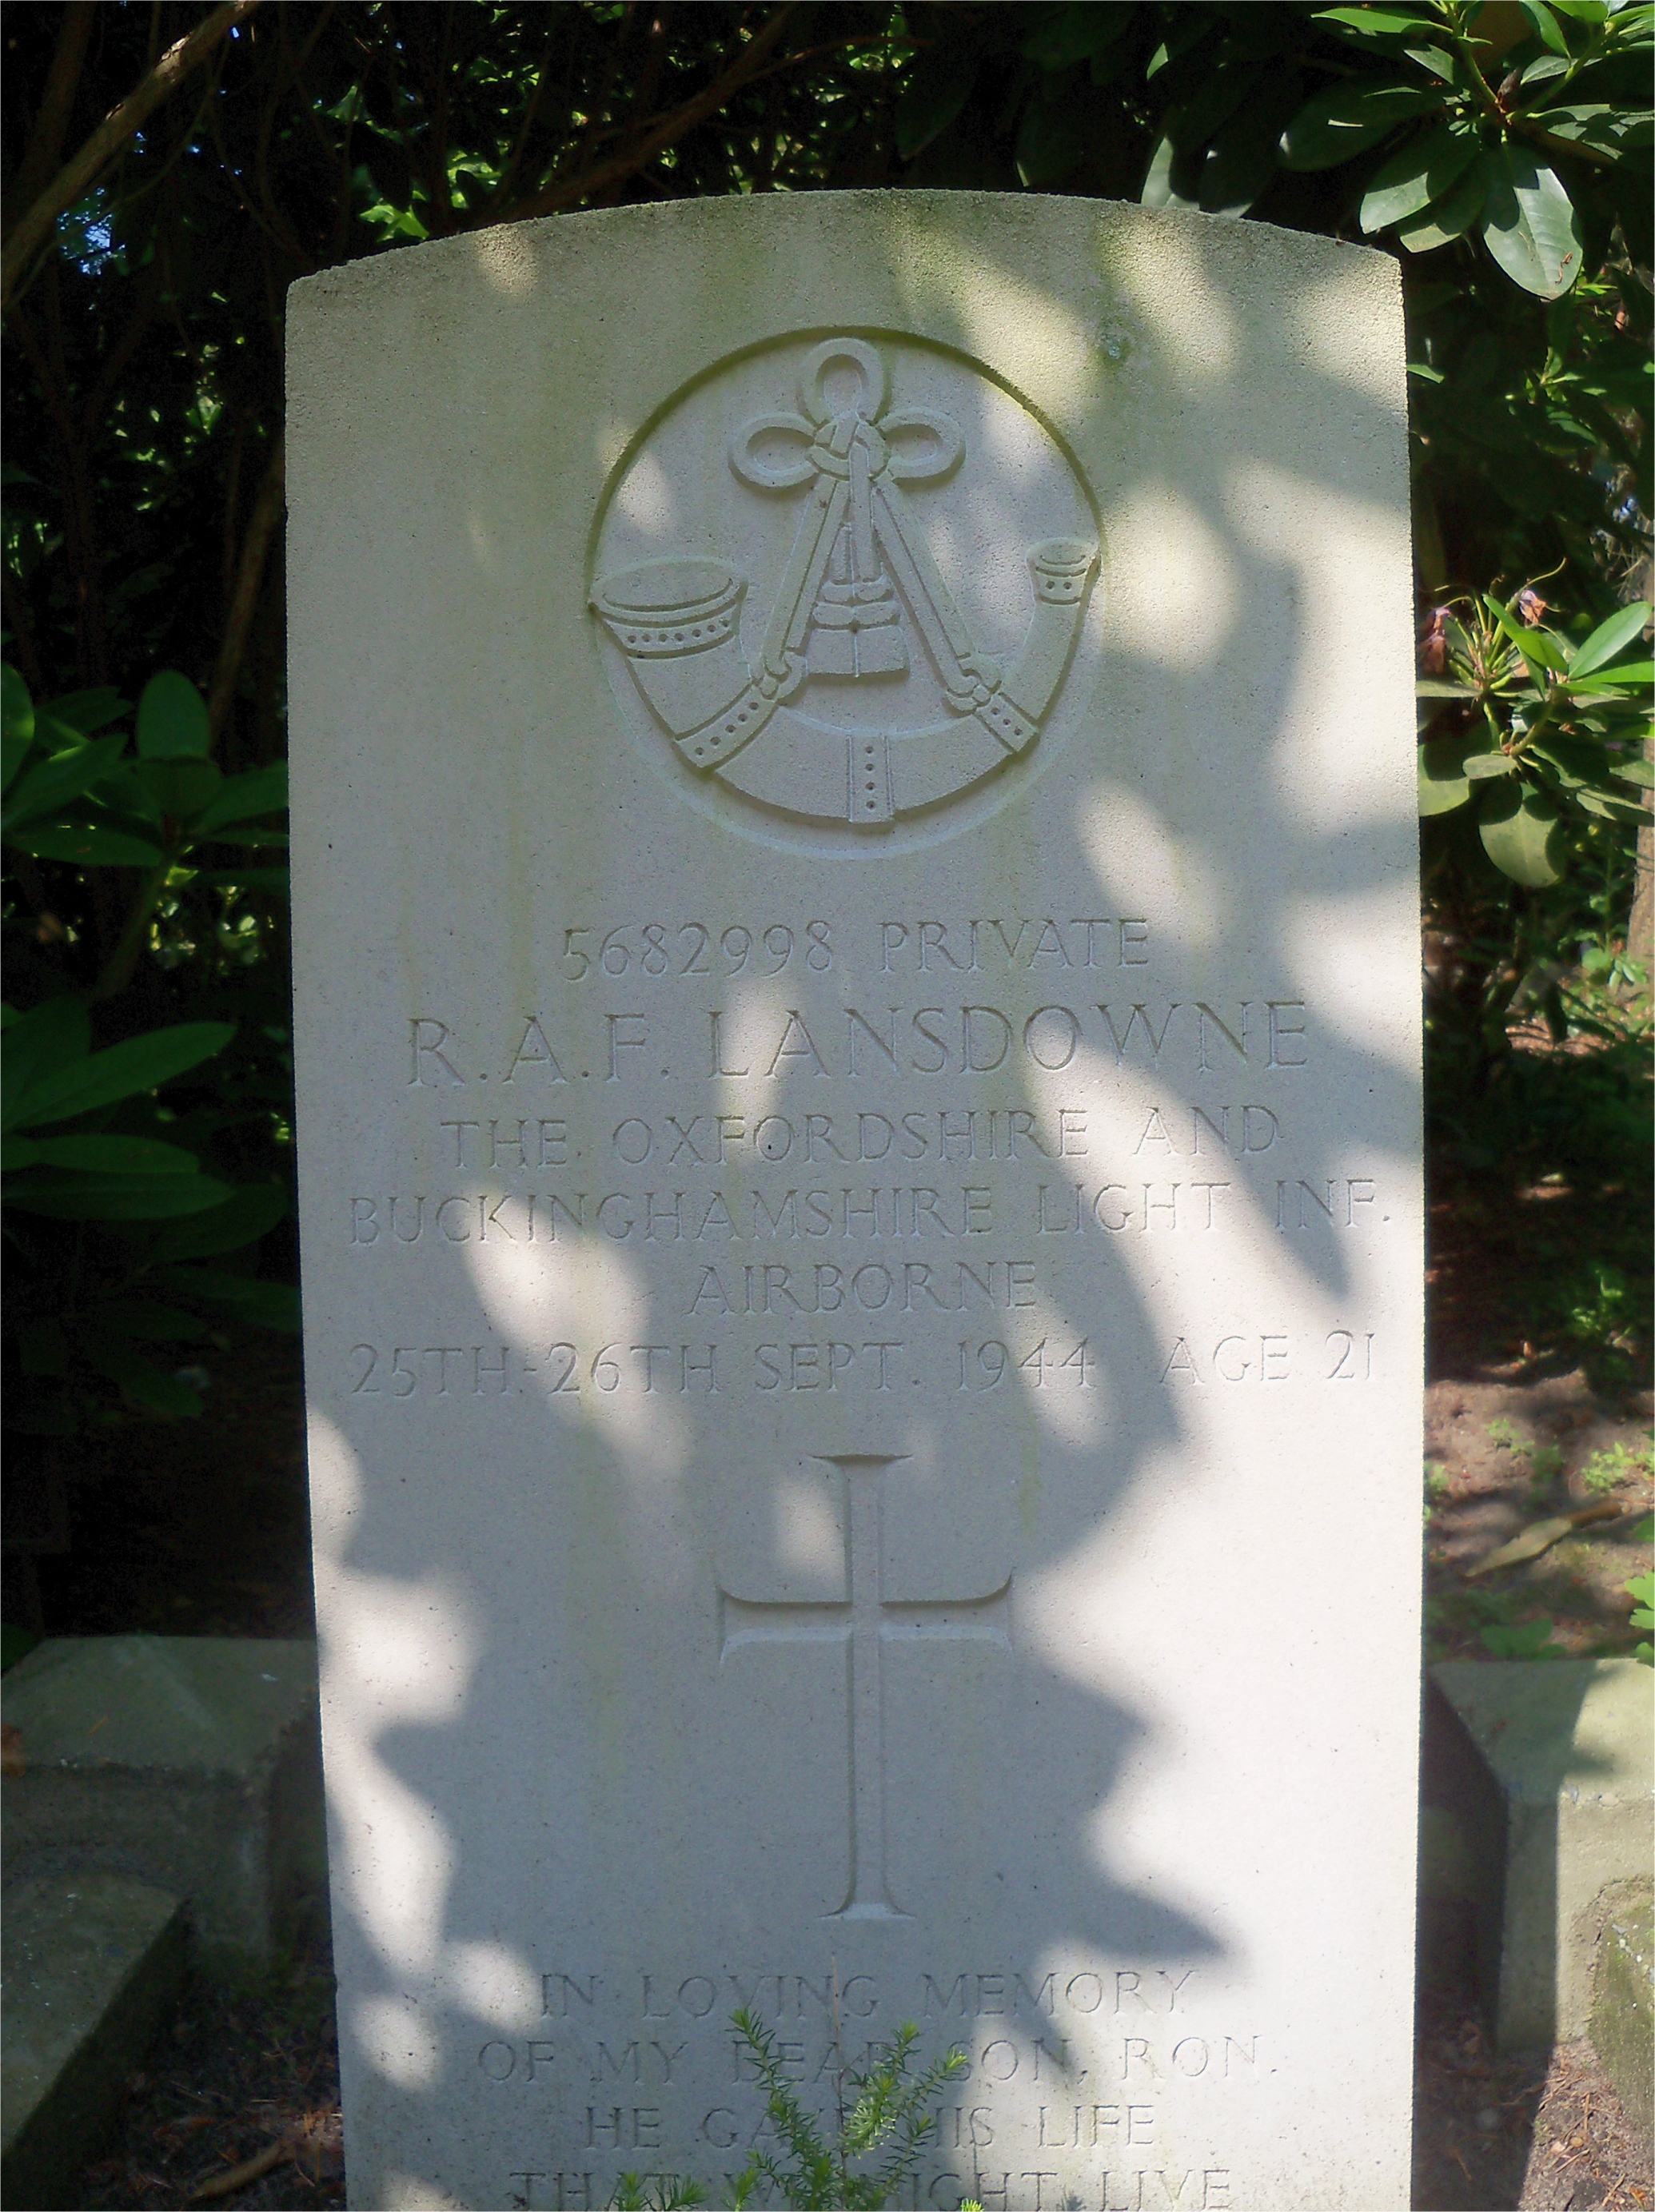 Grave of Pte R A F Lansdowne 25th-26th September